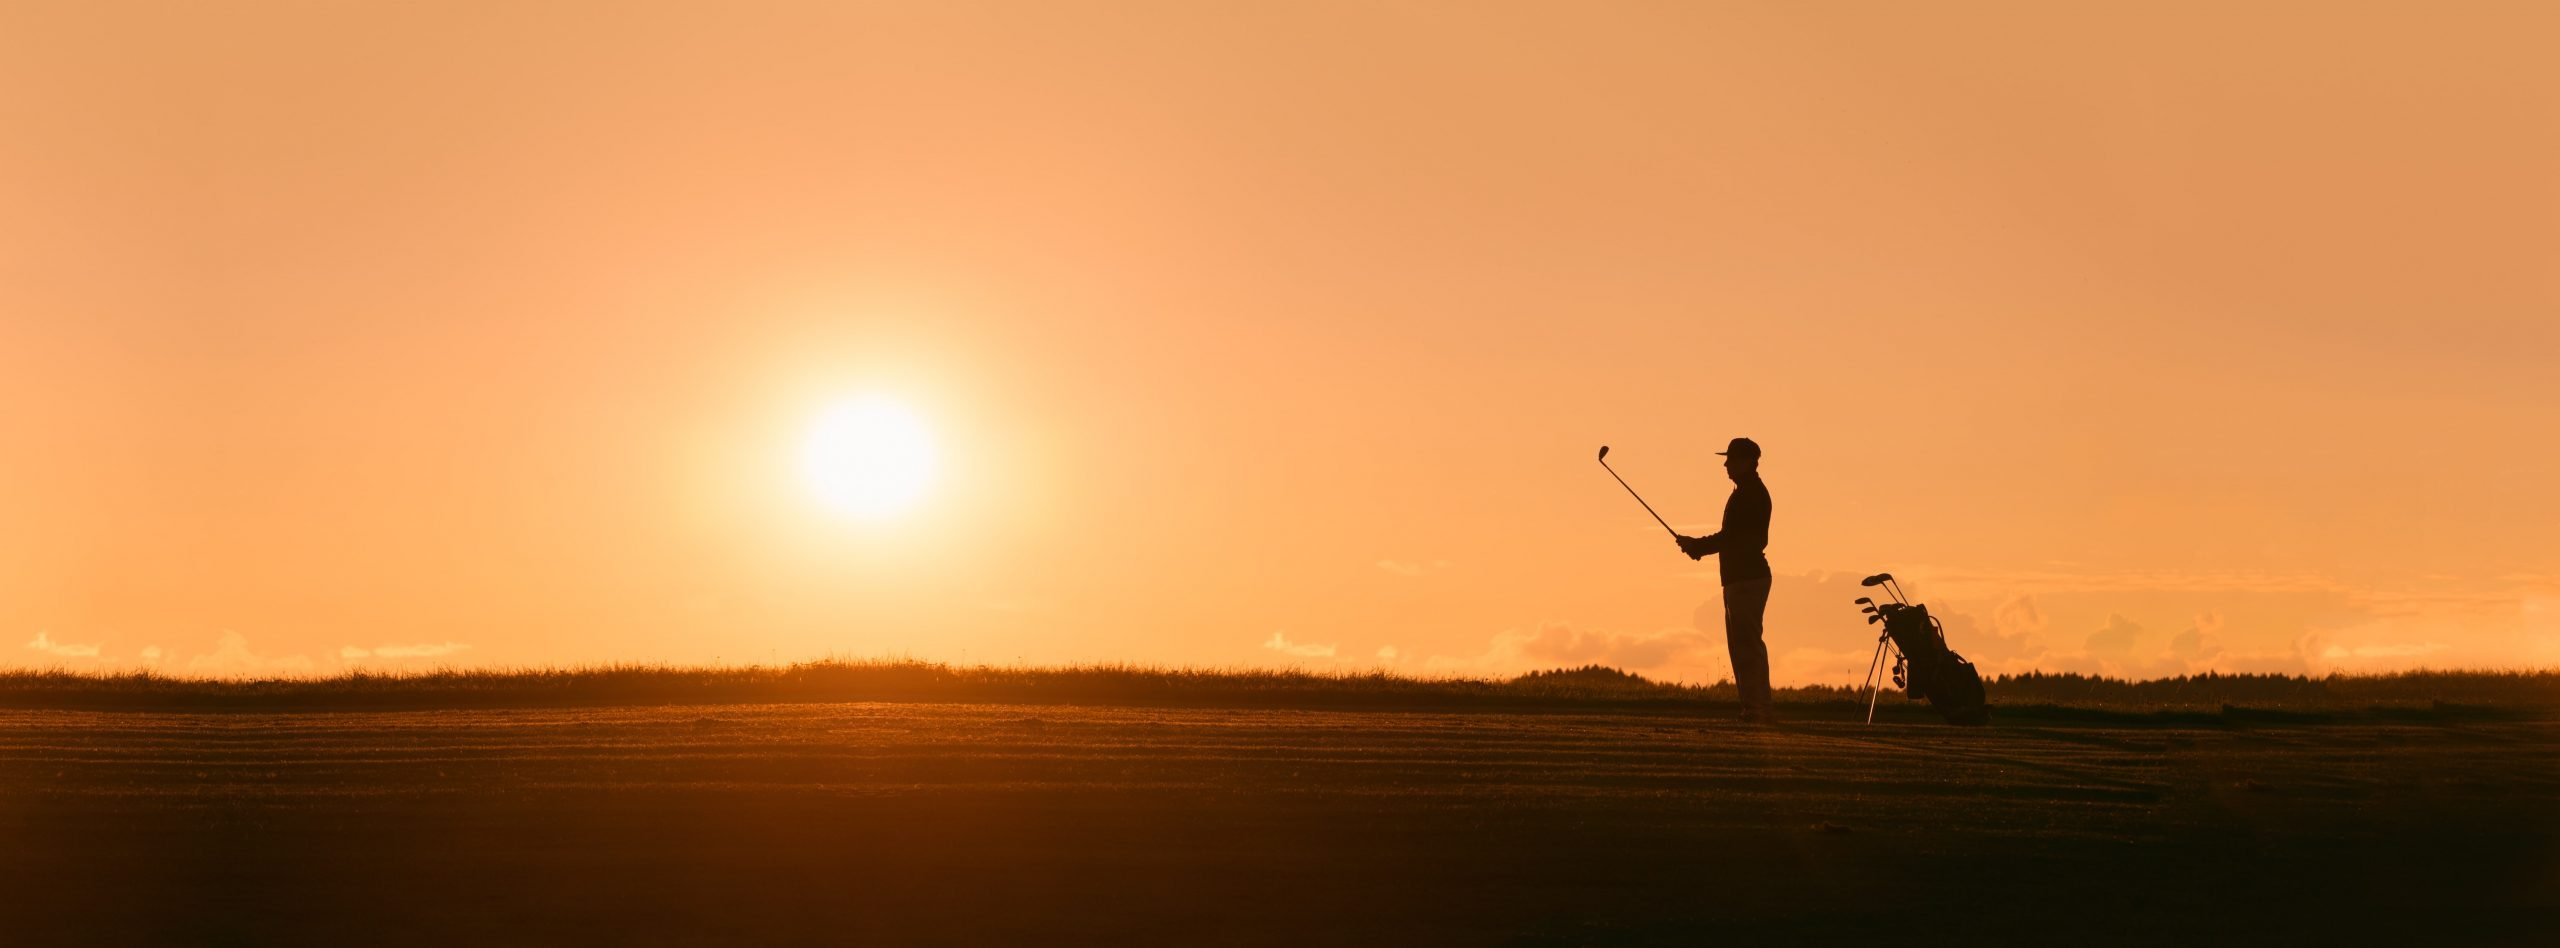 Silouhette of a golfer in the sunset